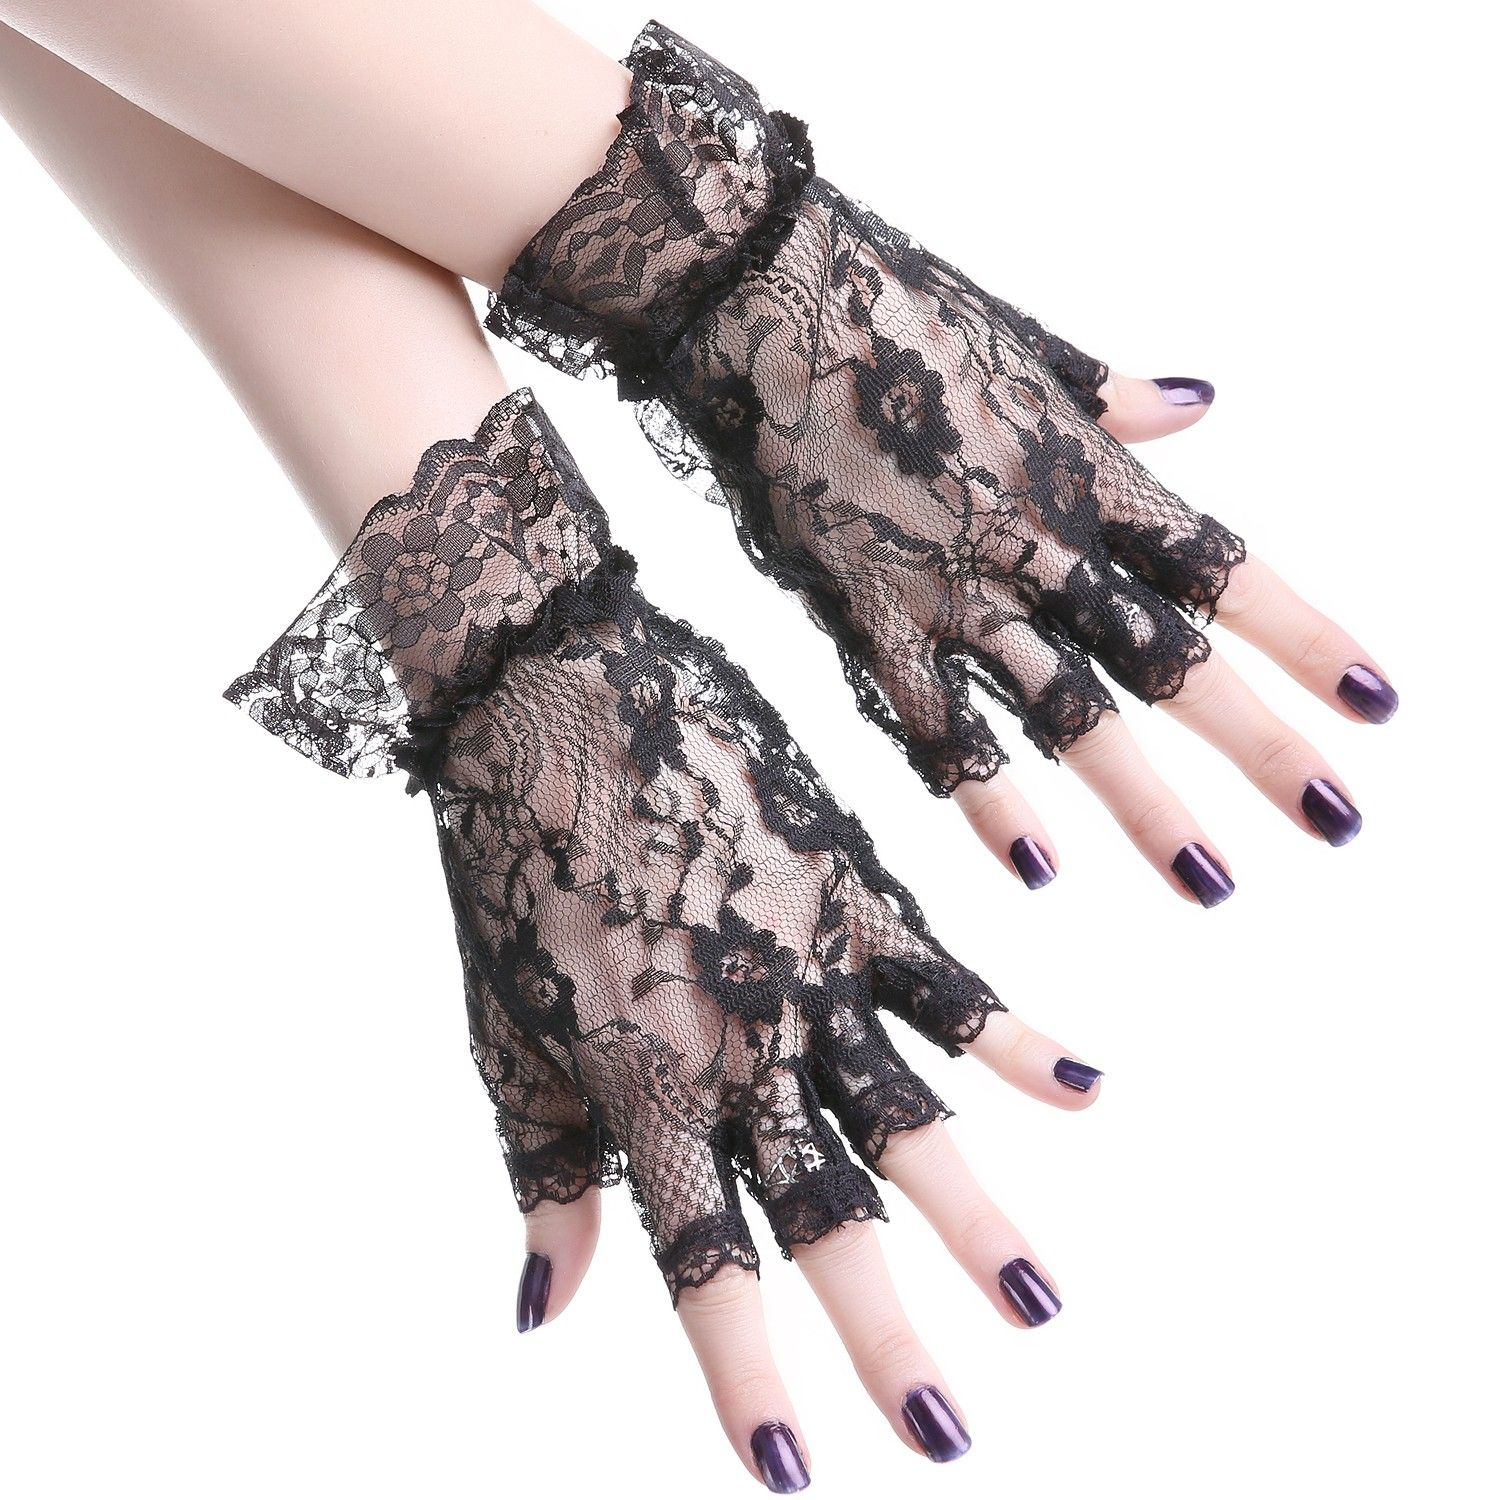 Lace Wrist Length Gloves with Ruffle Trim Bridal Goth Costume Full Fingered 1260